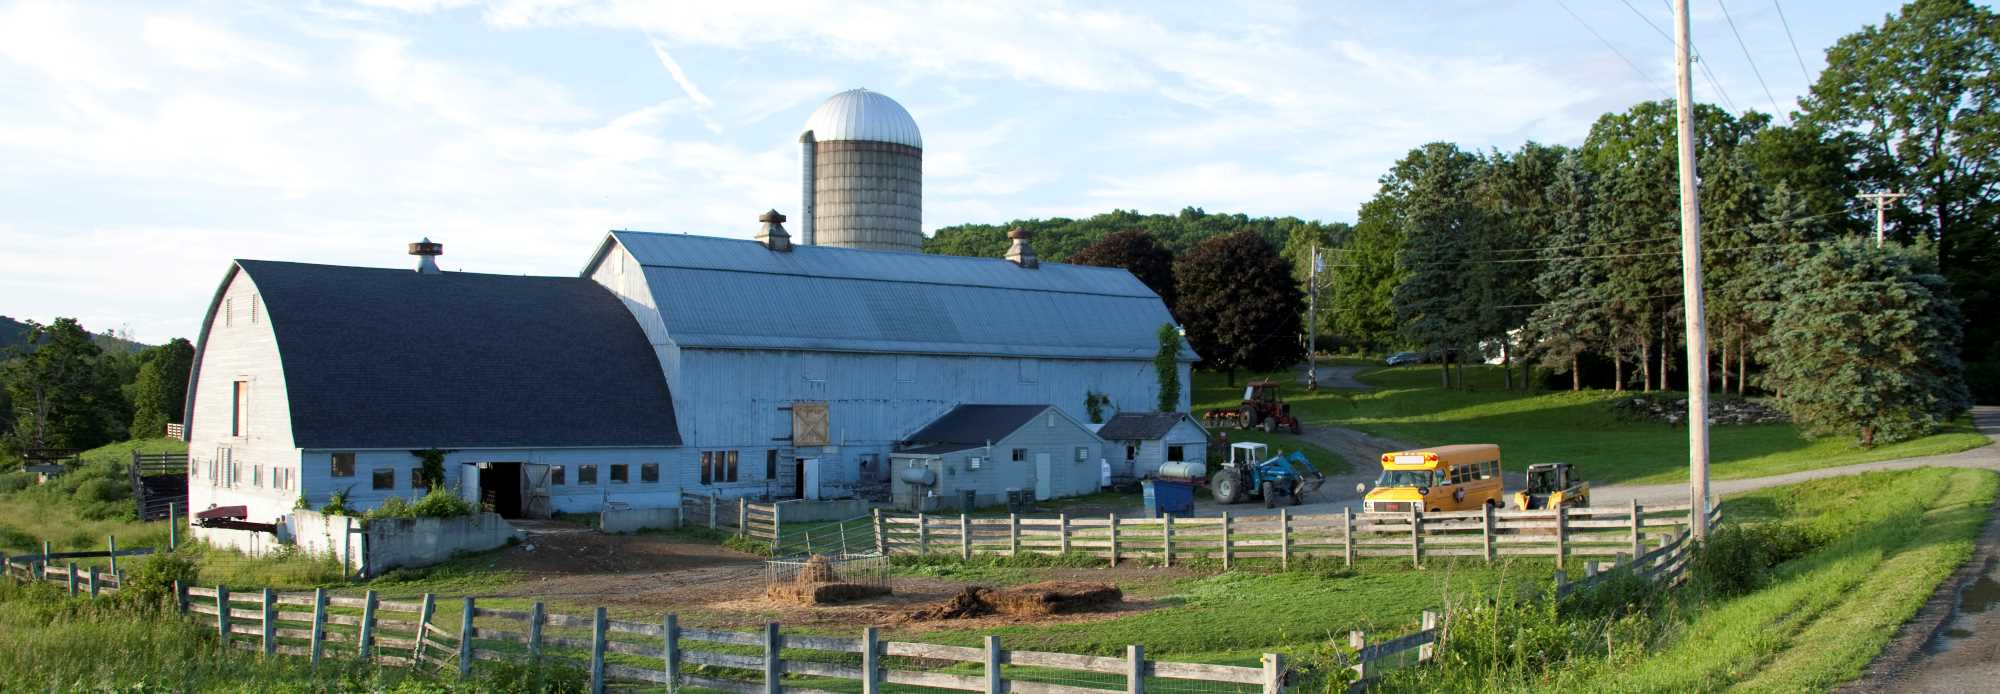 One of Our Livestock Barns